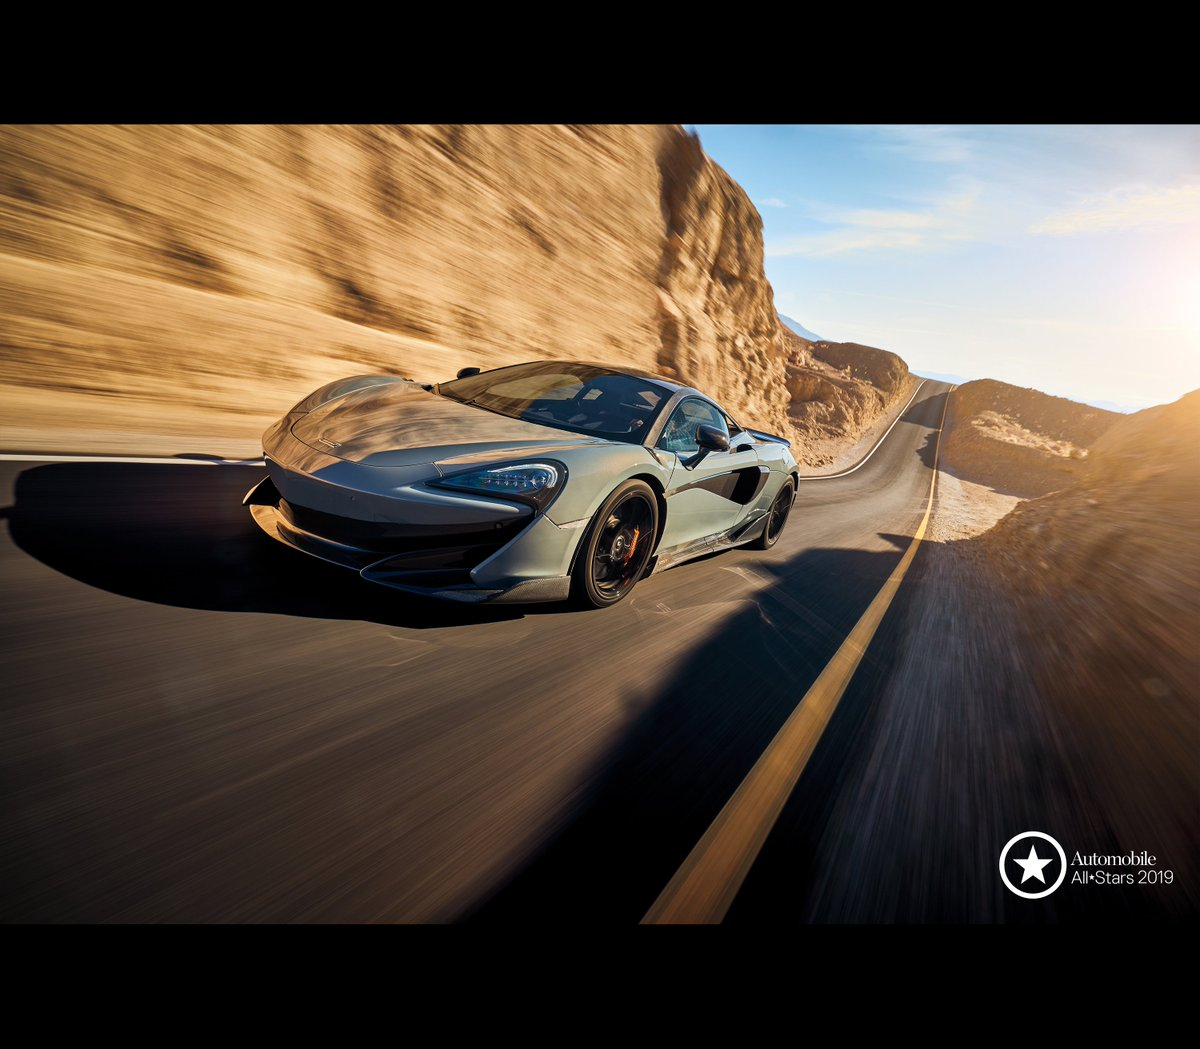 mclaren automotive (@mclarenauto) | twitter